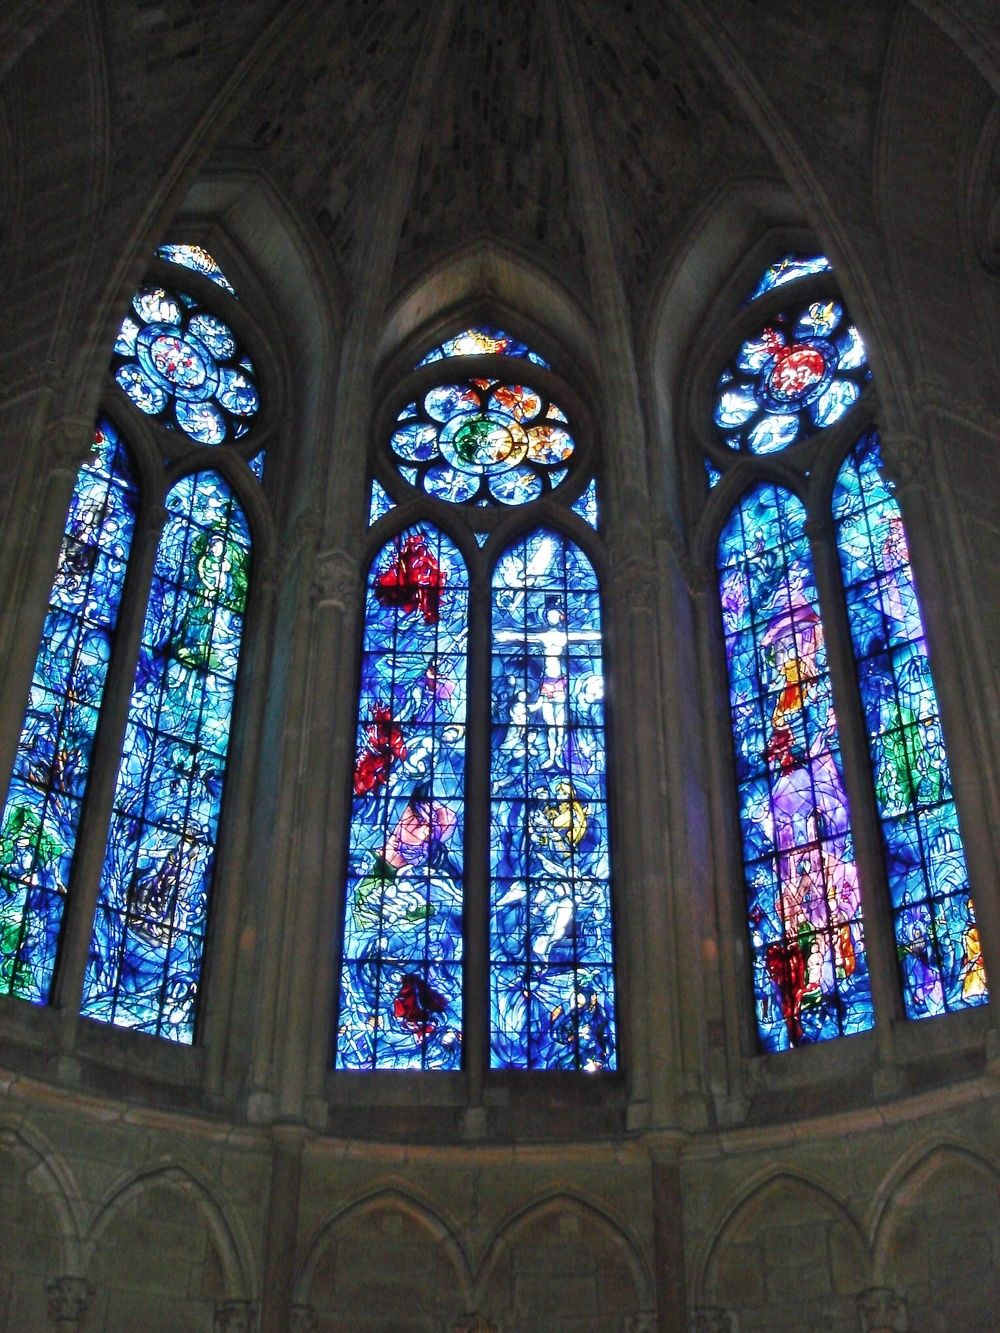 Chapel of Reims Cathedral in France, designed by Marc Chagall and made by Charles Marq in 1974. Credit- Peter Lucas